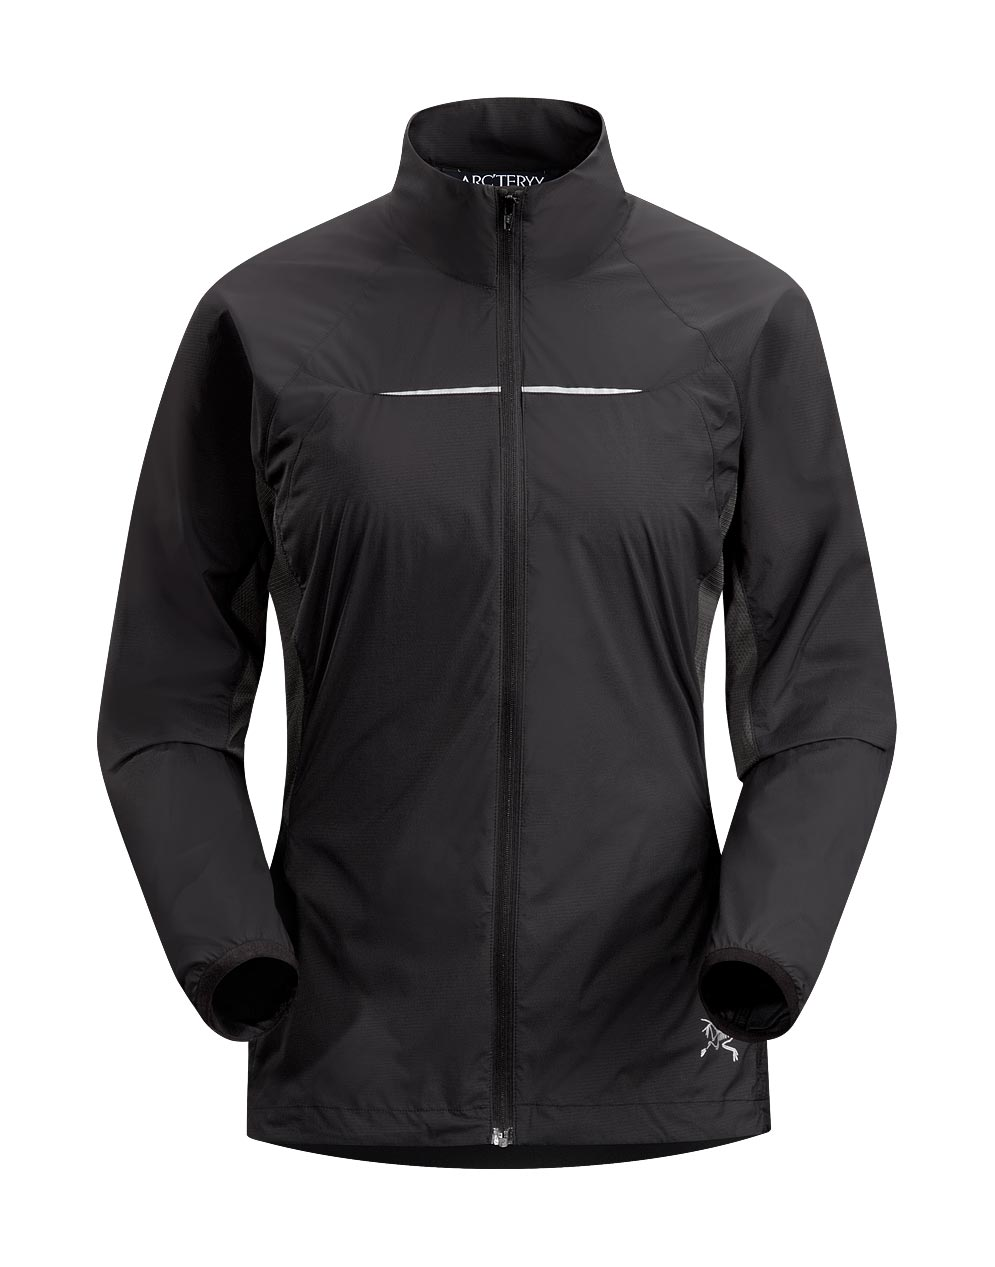 Arcteryx Jackets Women Black Cita Jacket - New